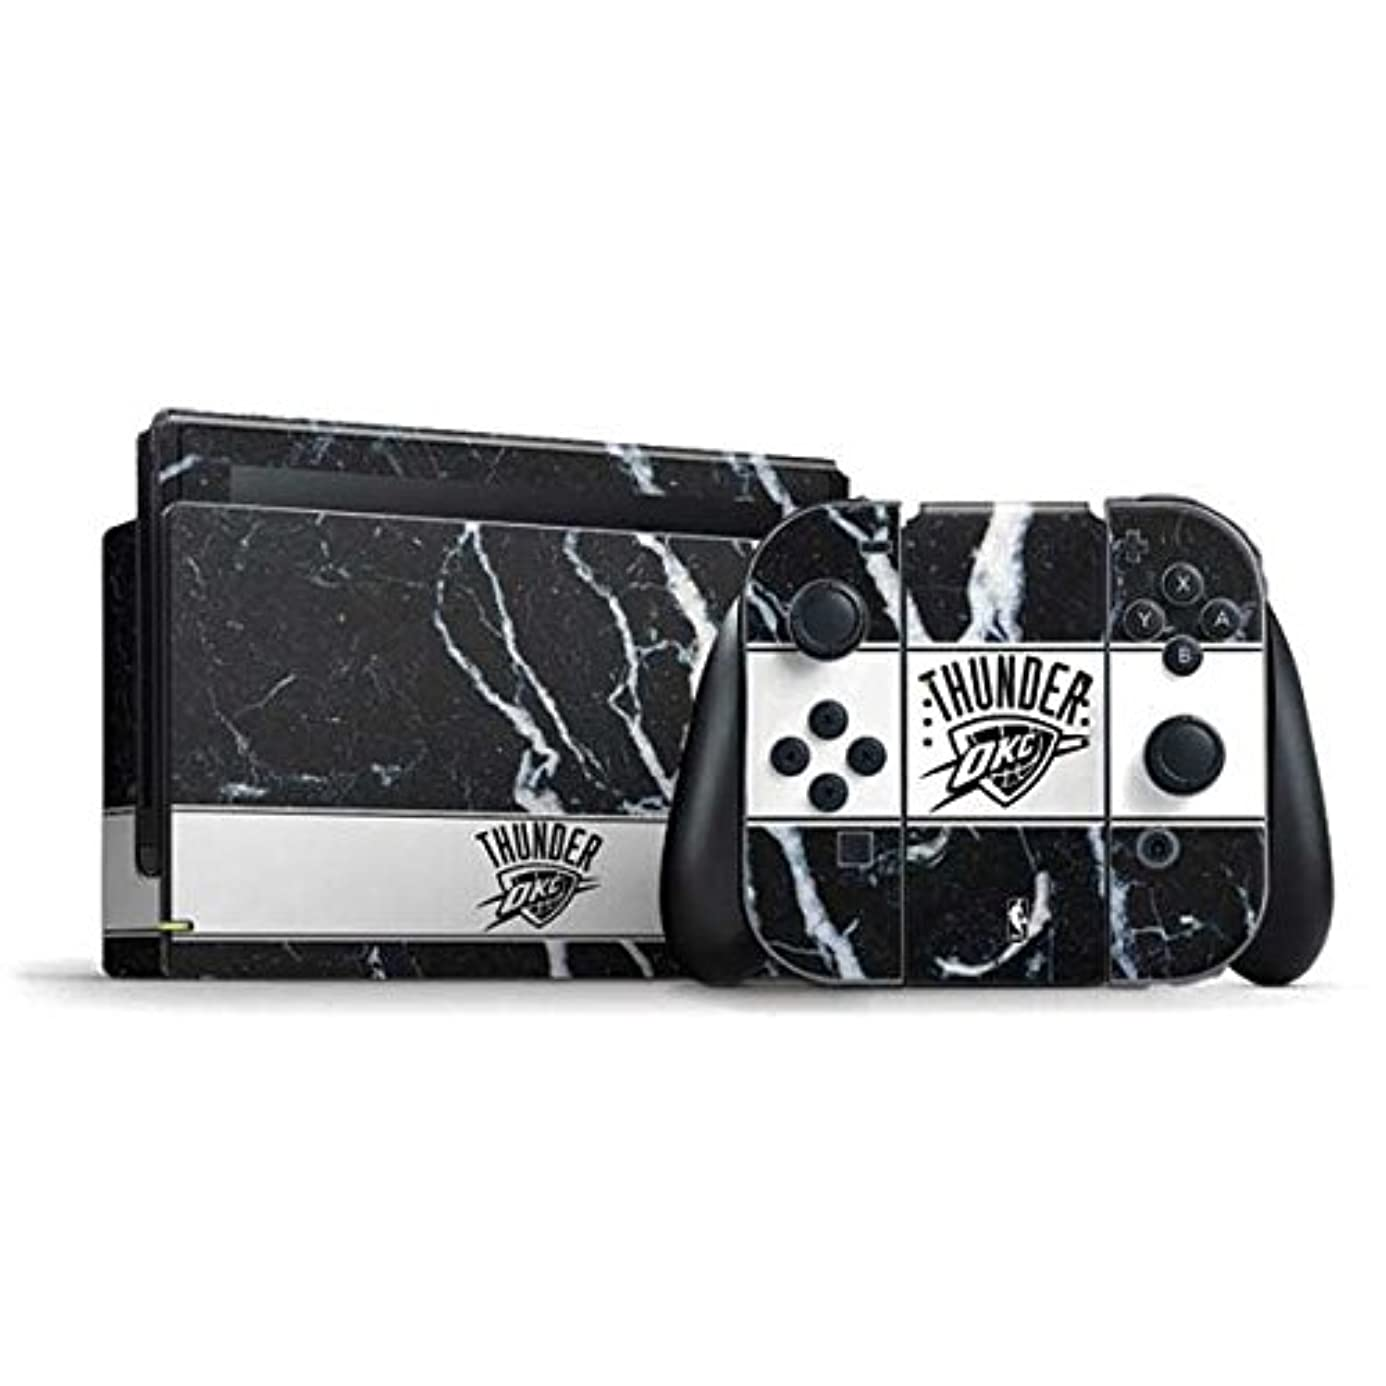 NBA Oklahoma City Thunder Nintendo Switch Bundle Skin - Oklahoma City Thunder Marble Vinyl Decal Skin For Your Switch Bundle